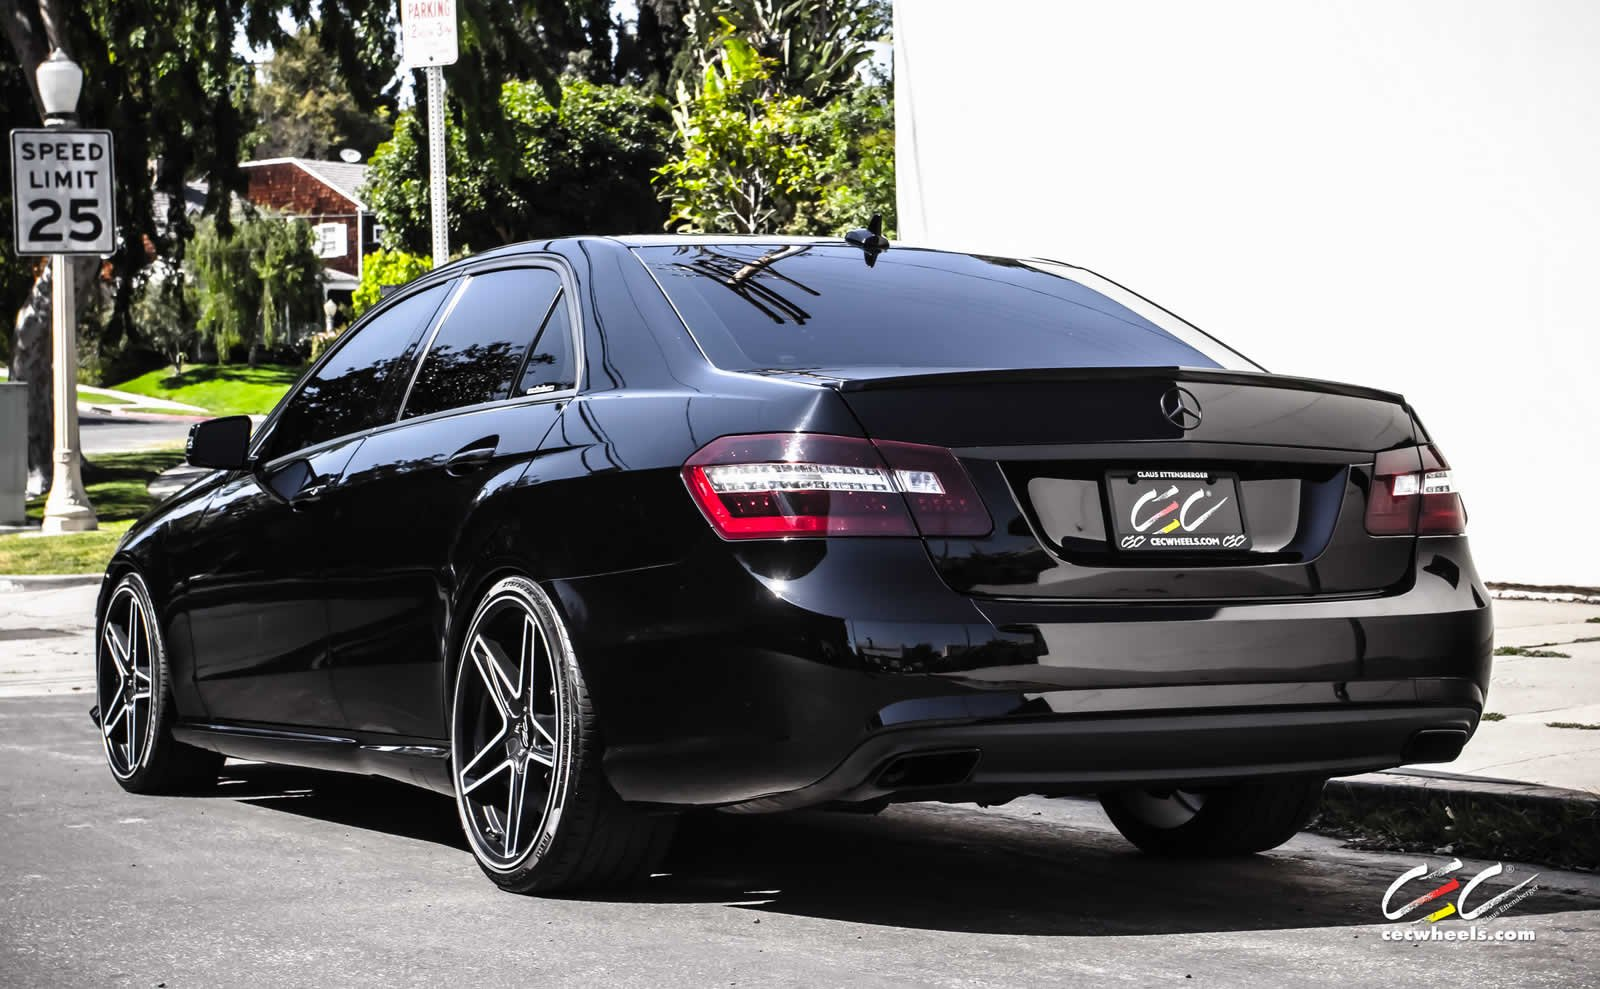 2016 Mercedes Benz C Class Coupe Selenit Grey Studio 6 2560x1600 together with Mercedes E Class Coupe Amg 3 as well Pictures Mercedes Benz 250 W114 115 1969 76 3246 additionally Forum entry likewise 7807003236. on mercedes benz e e350